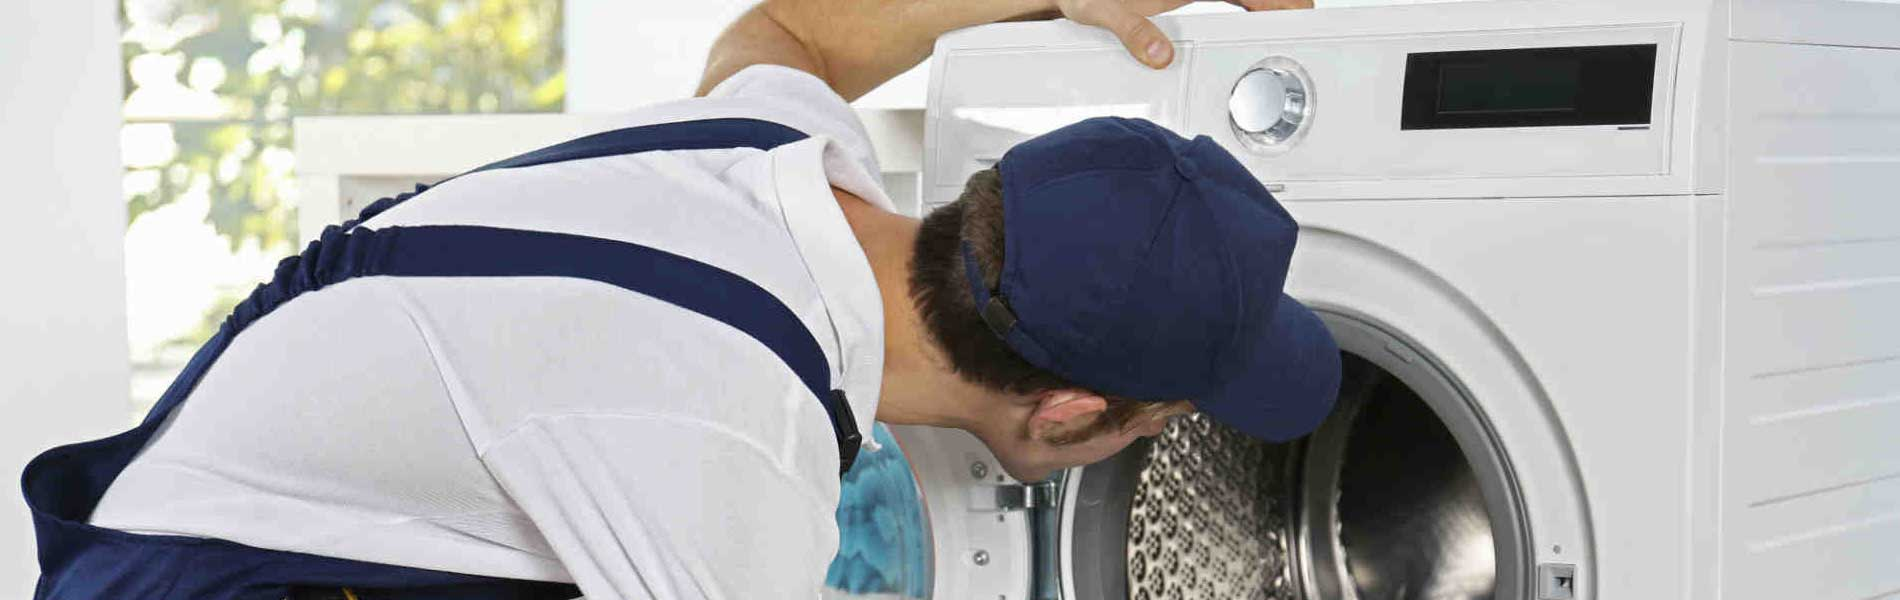 Godrej Washing Machine Repair in TVK Nagar